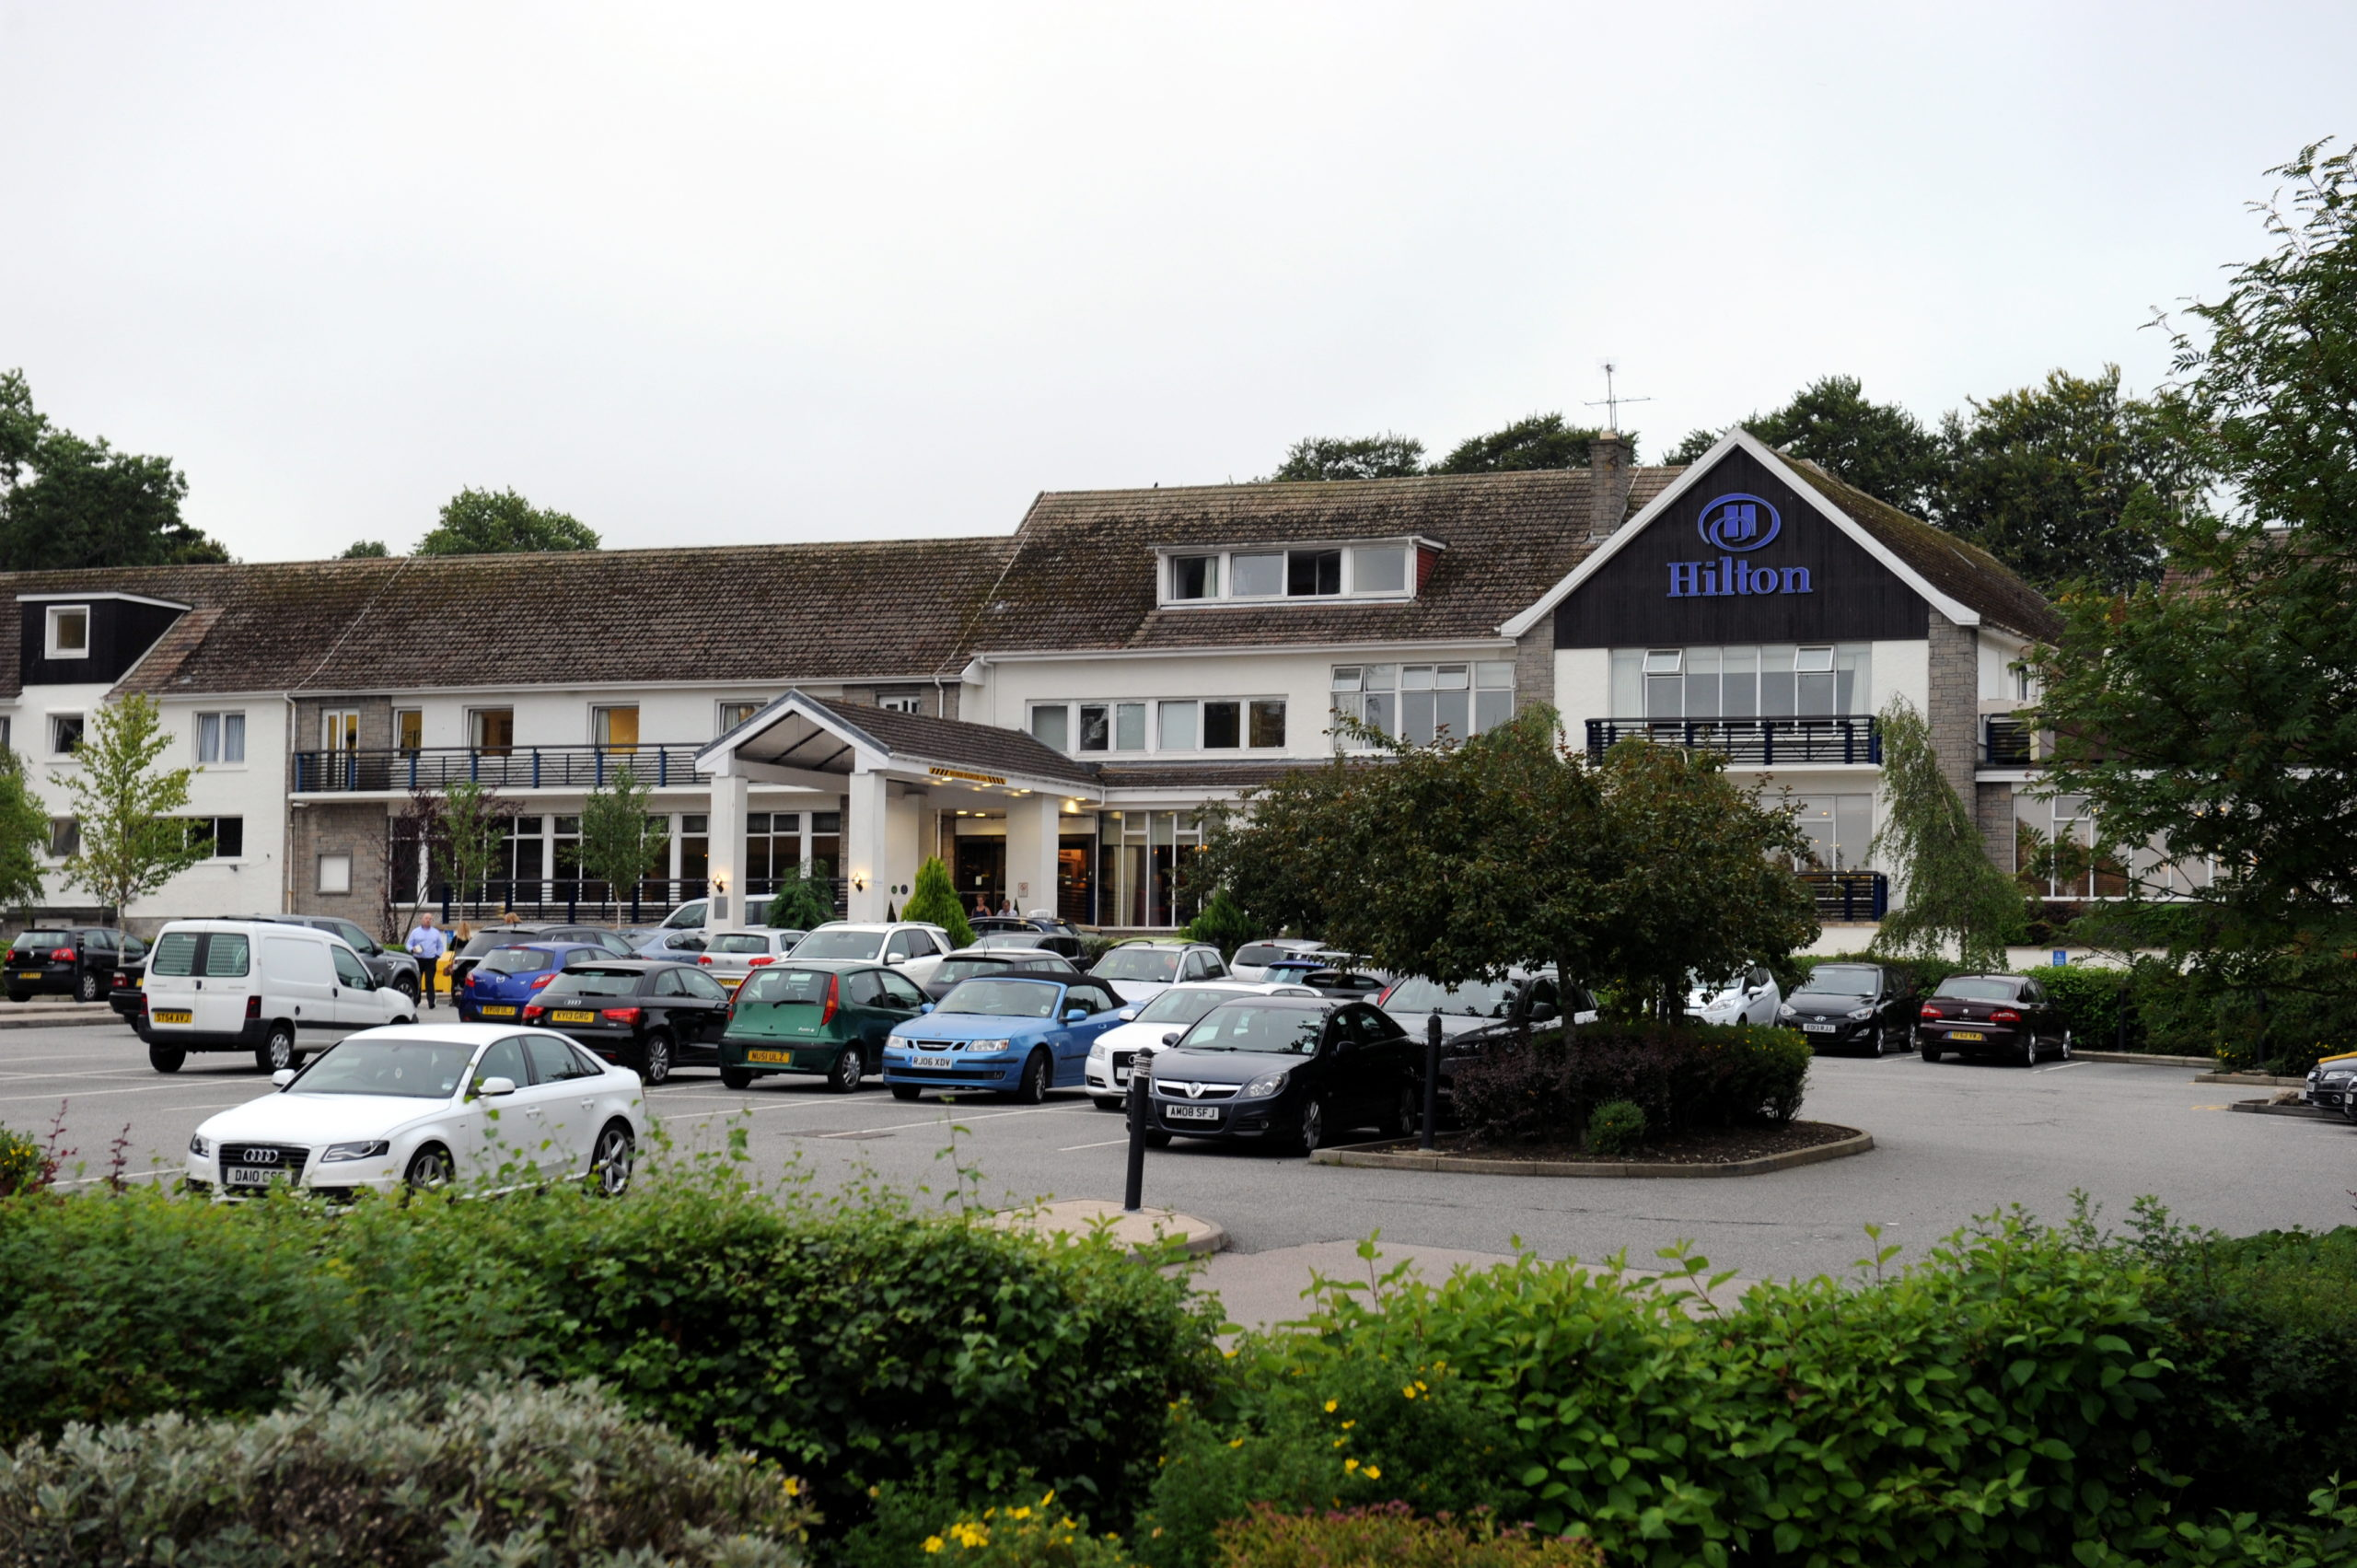 The Treetops Hotel on Springfield Road prior to its closure.